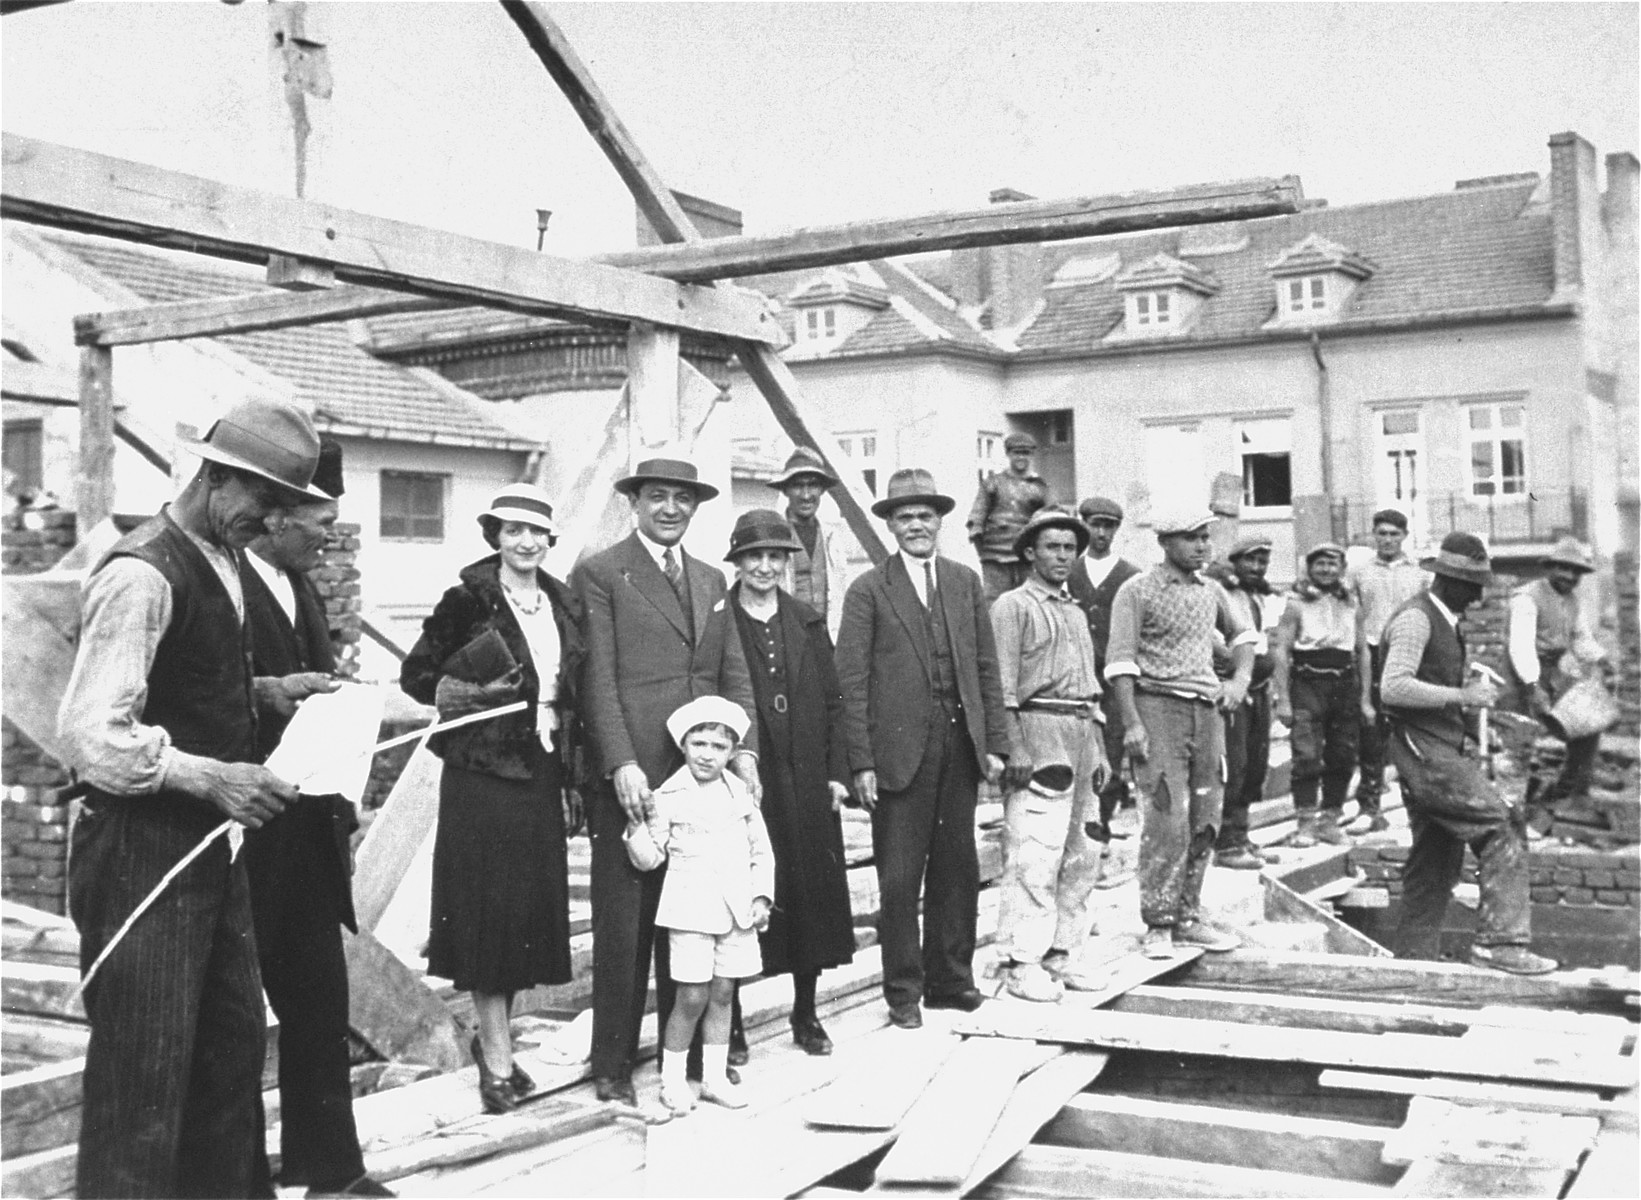 Members of the Yasharoff family pose with construction workers at the site of their new home, a three-story apartment building located at 24 Benkovska Street in Sofia.  Pictured from left to right are: two construction workers, Nelly and Joseph Yasharoff with two-year-old Norbert, Oro and Nissim Yasharoff.